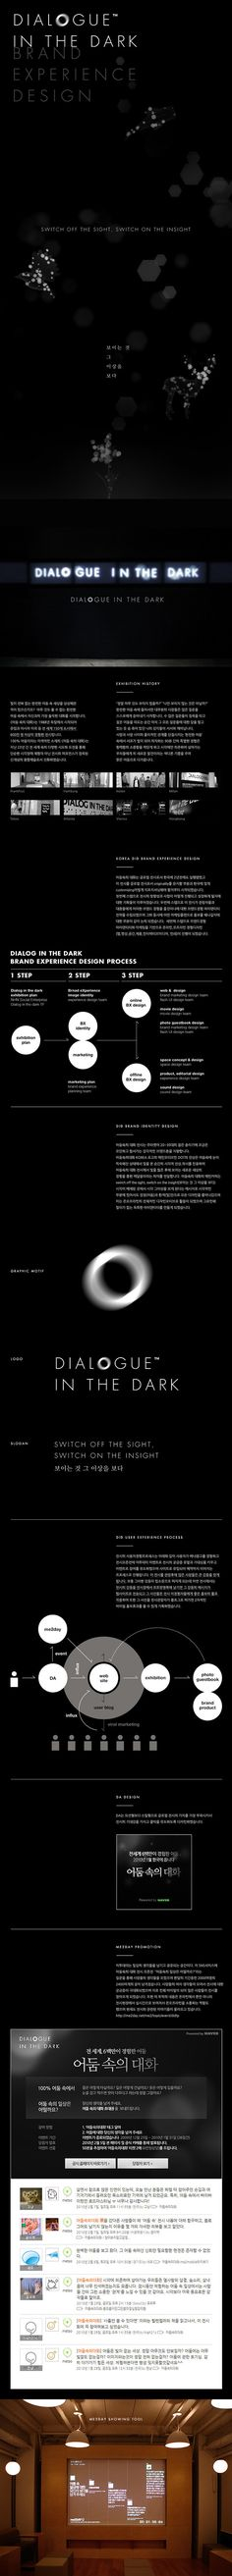 Dialog in the dark (Korea) Brand experience design on Behance